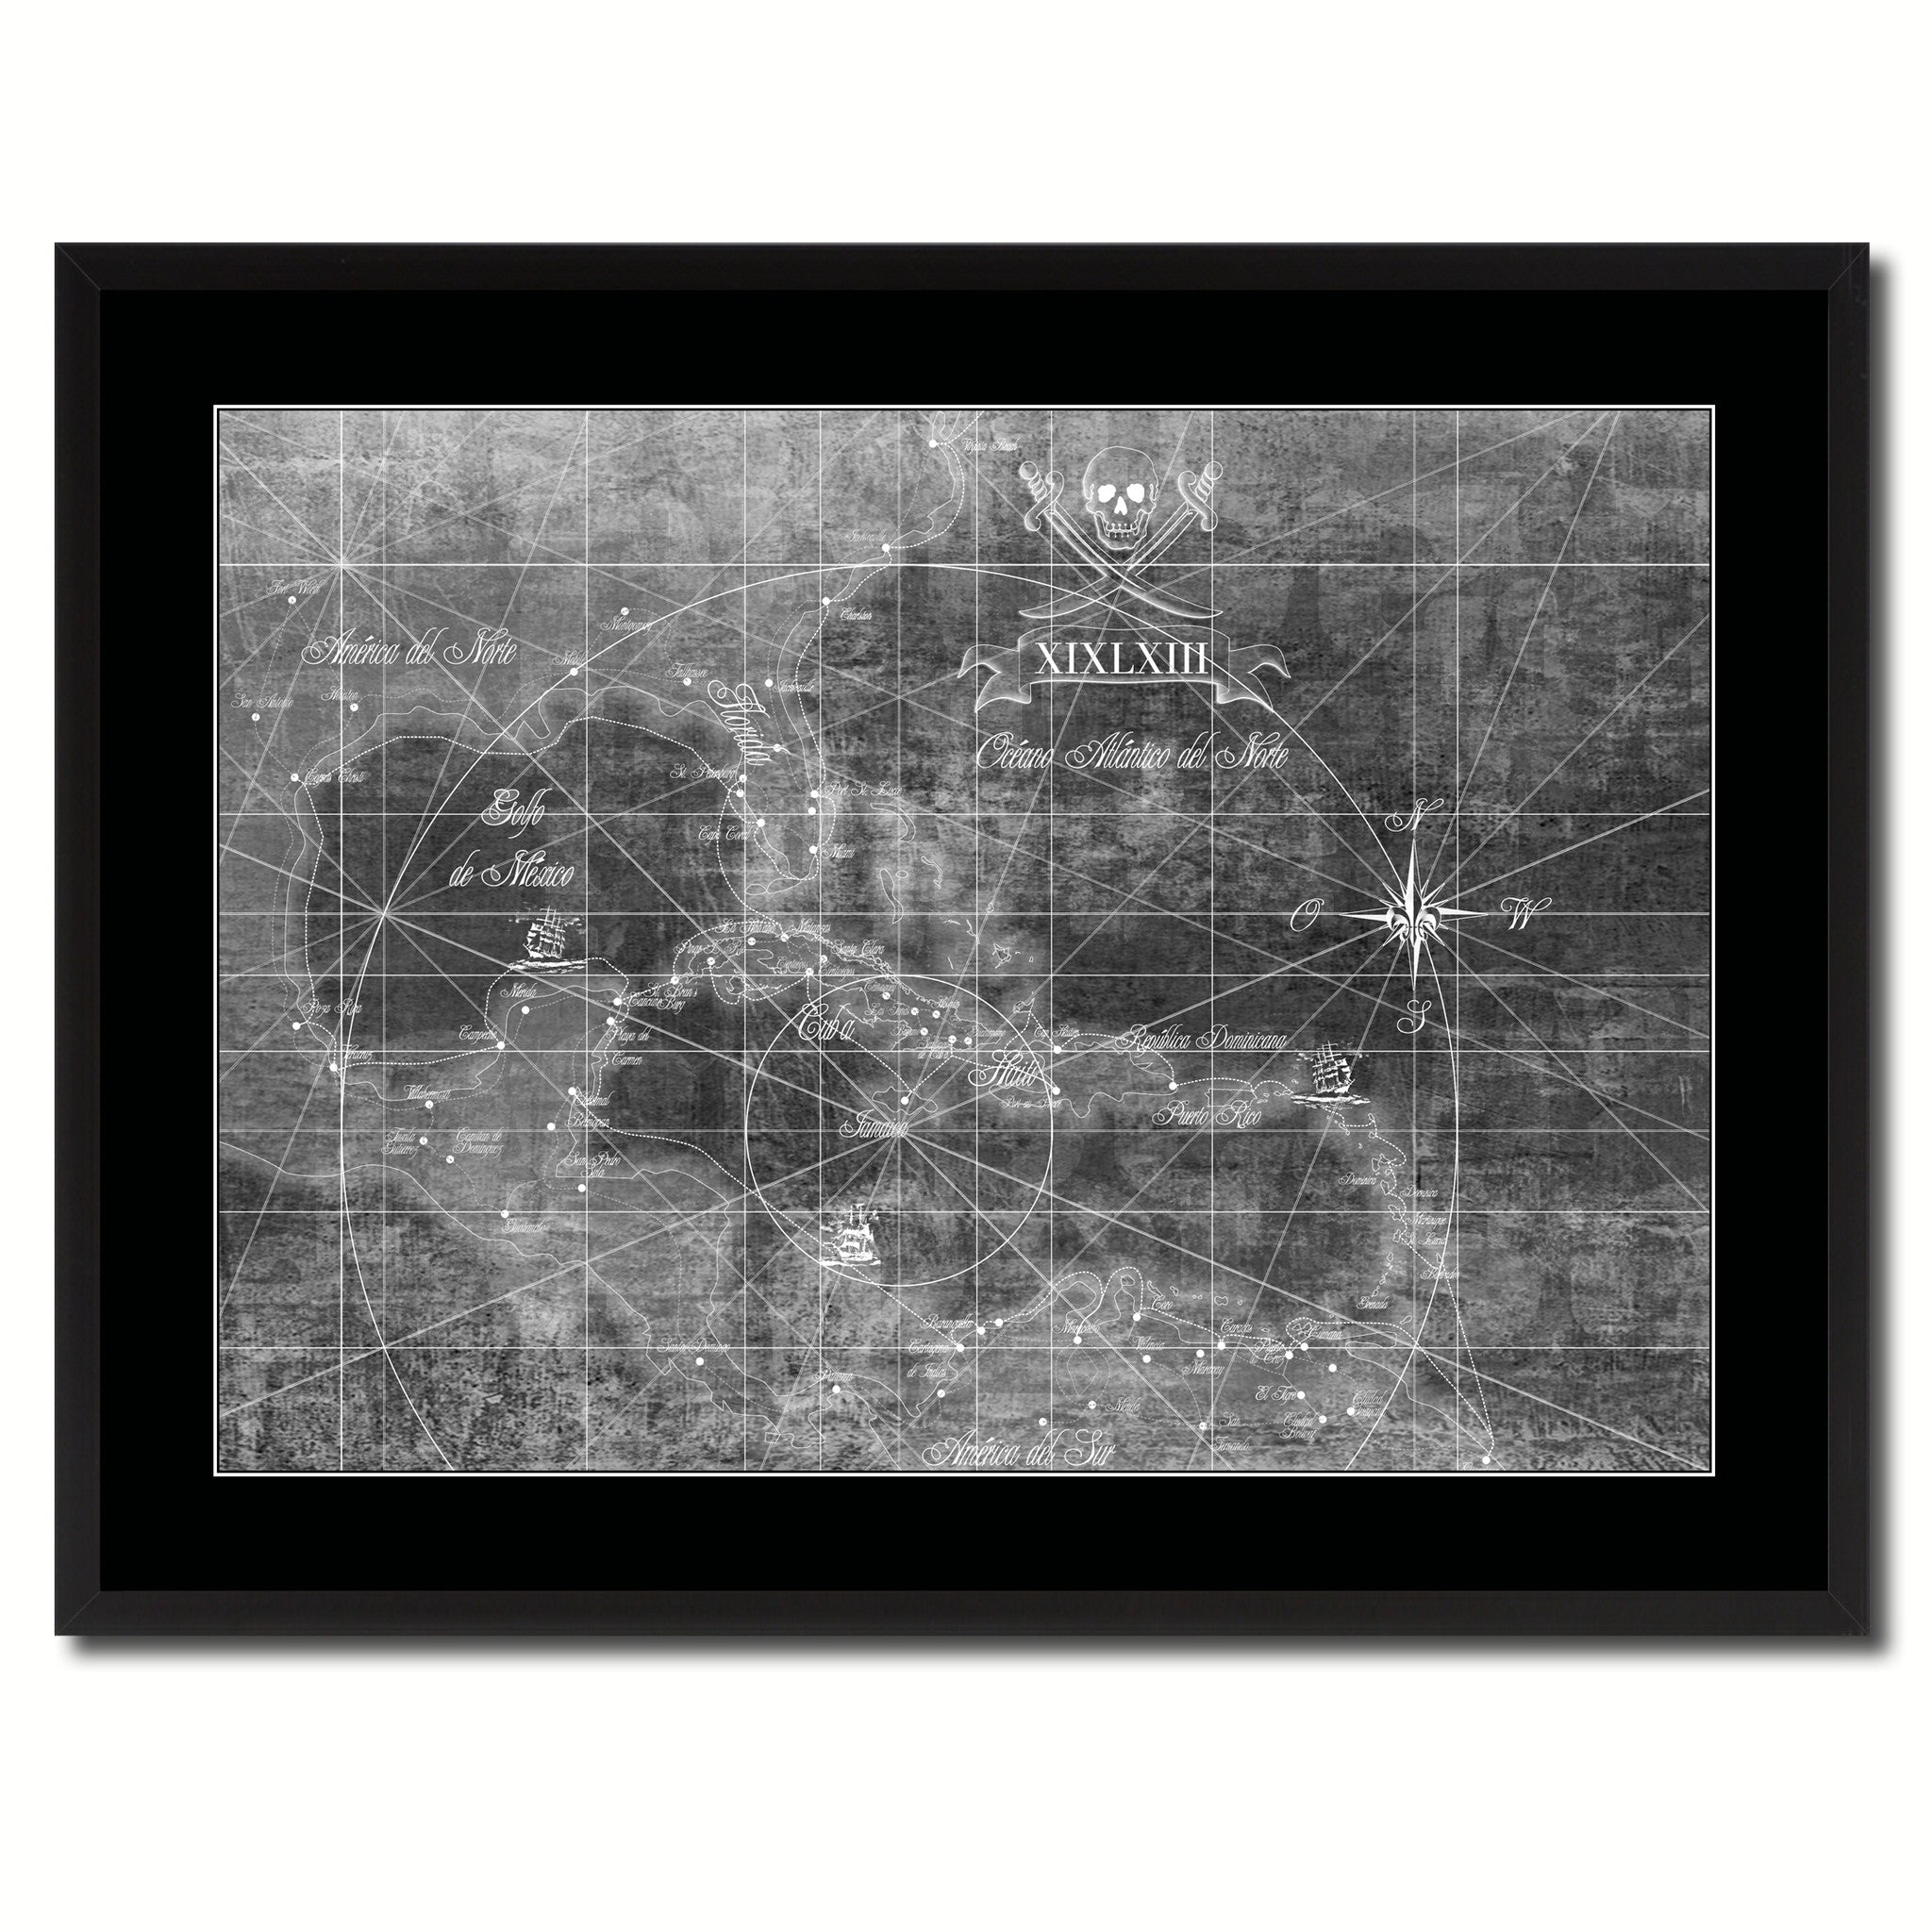 Caribbean Vintage Monochrome Map Canvas Print, Gifts Picture Frames Home Decor Wall Art